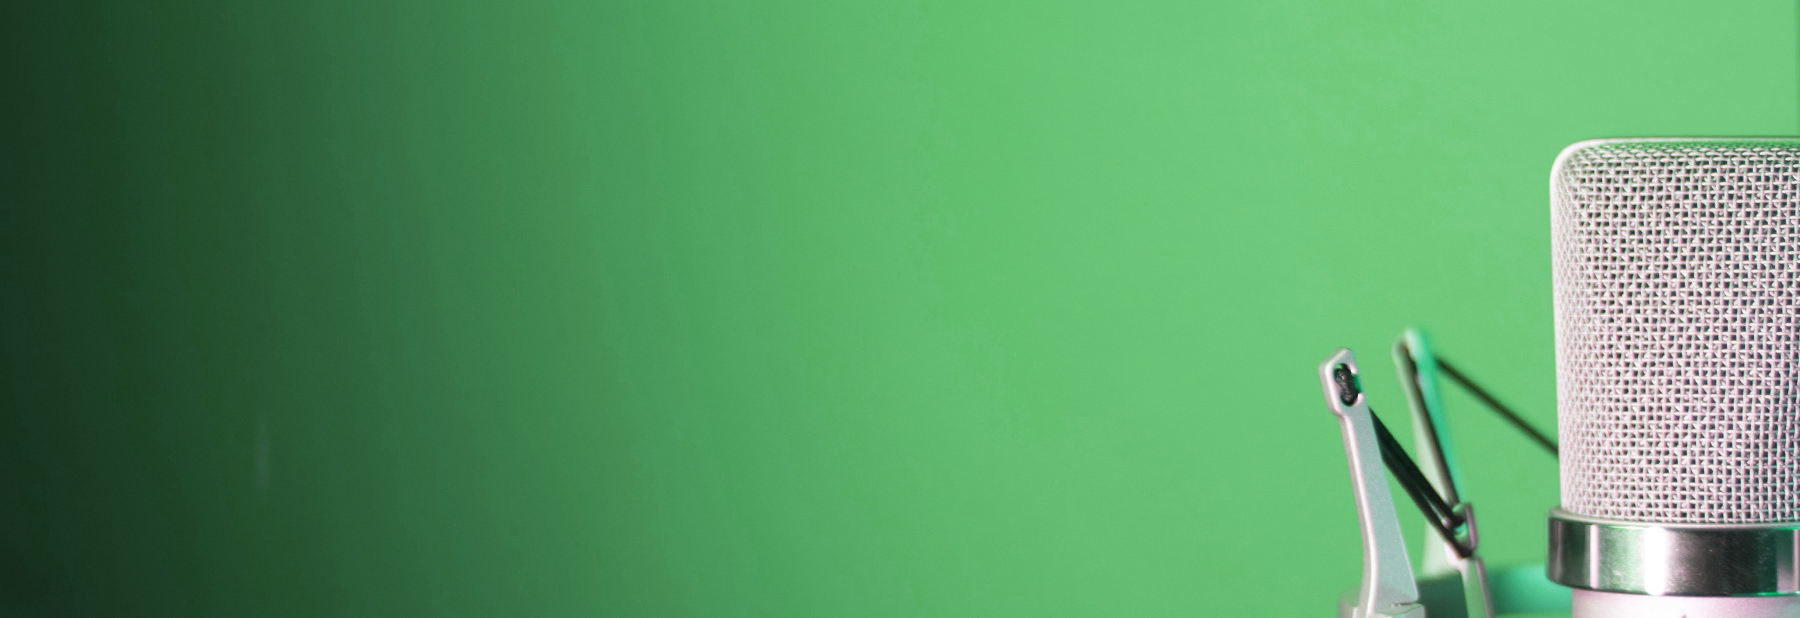 Green background with Microphone